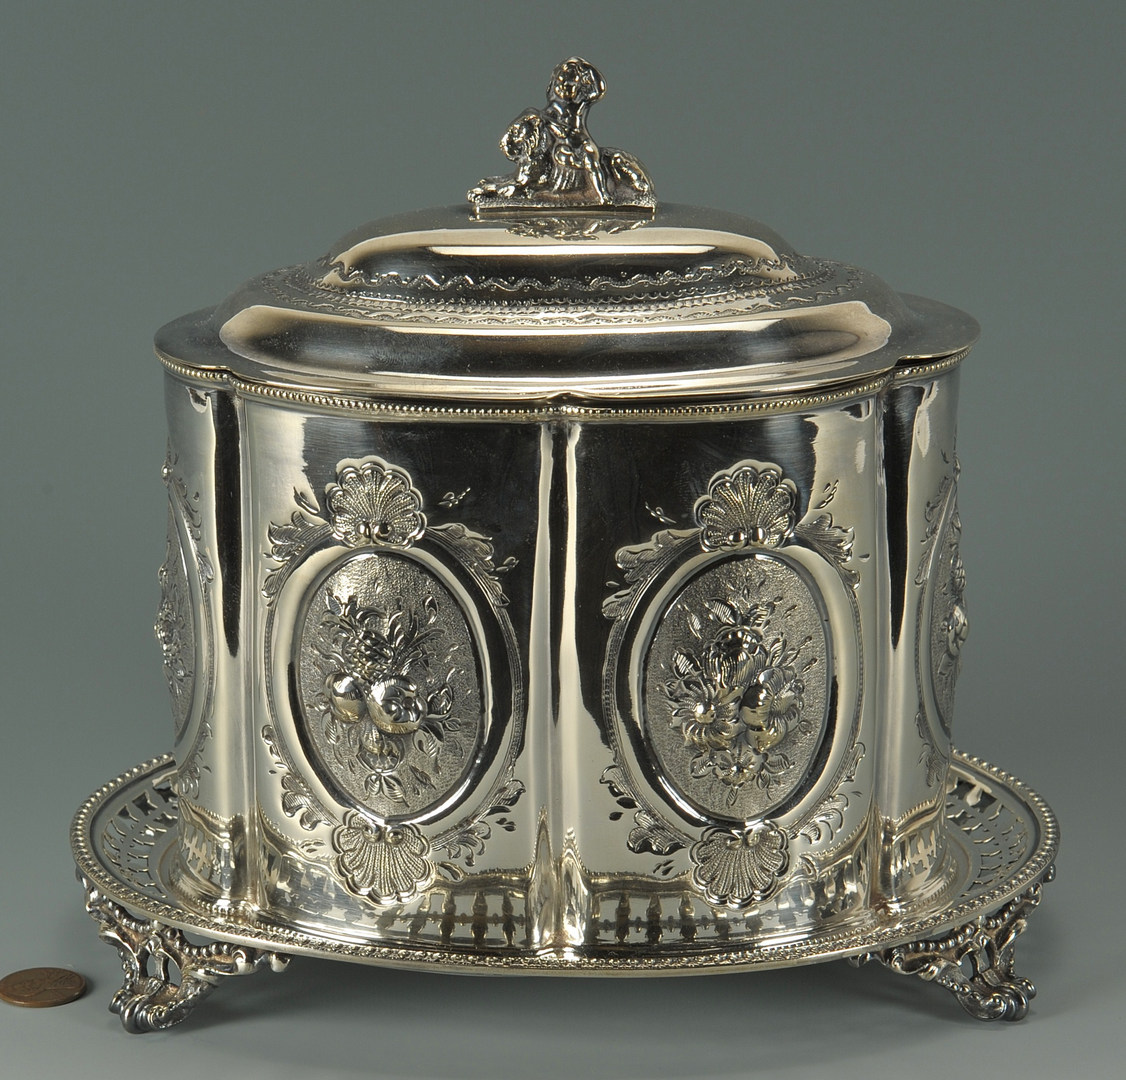 Lot 623: Victorian silverplated biscuit barrel